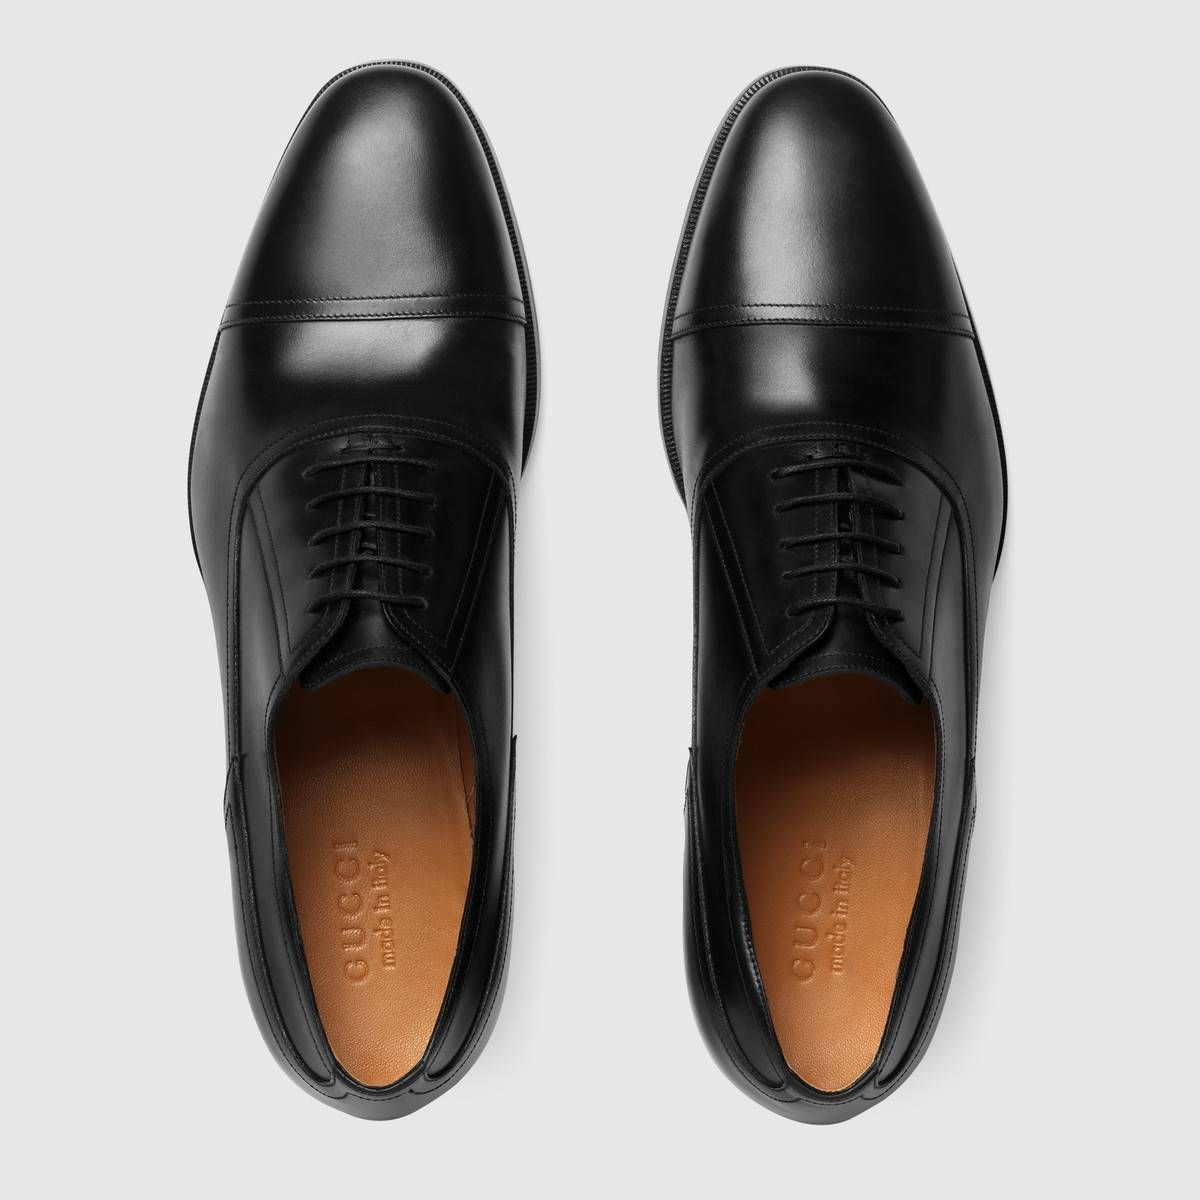 Shop The Leather Lace Up Shoe By Gucci A Classic Leather Lace Up Is Designed With A Sleek Construction In Sh Dress Shoes Men Leather Shoes Men Gucci Men Shoes [ 1200 x 1200 Pixel ]